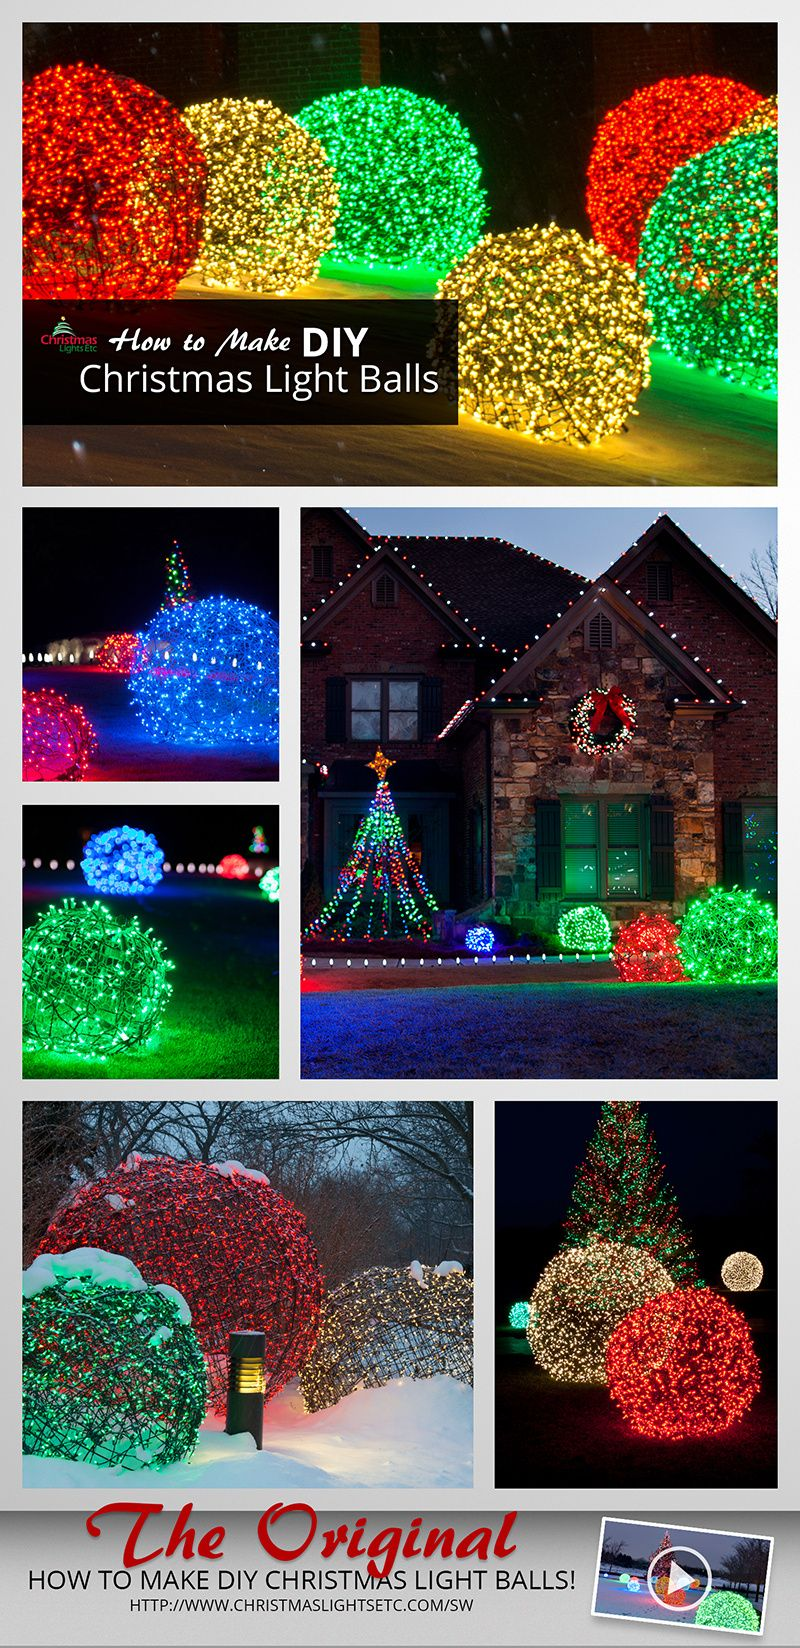 How to make christmas light balls outdoor christmas diy light and how to make wildly popular light balls using chicken wire and string lights you can add diy light balls to your outdoor christmas decorations aloadofball Images